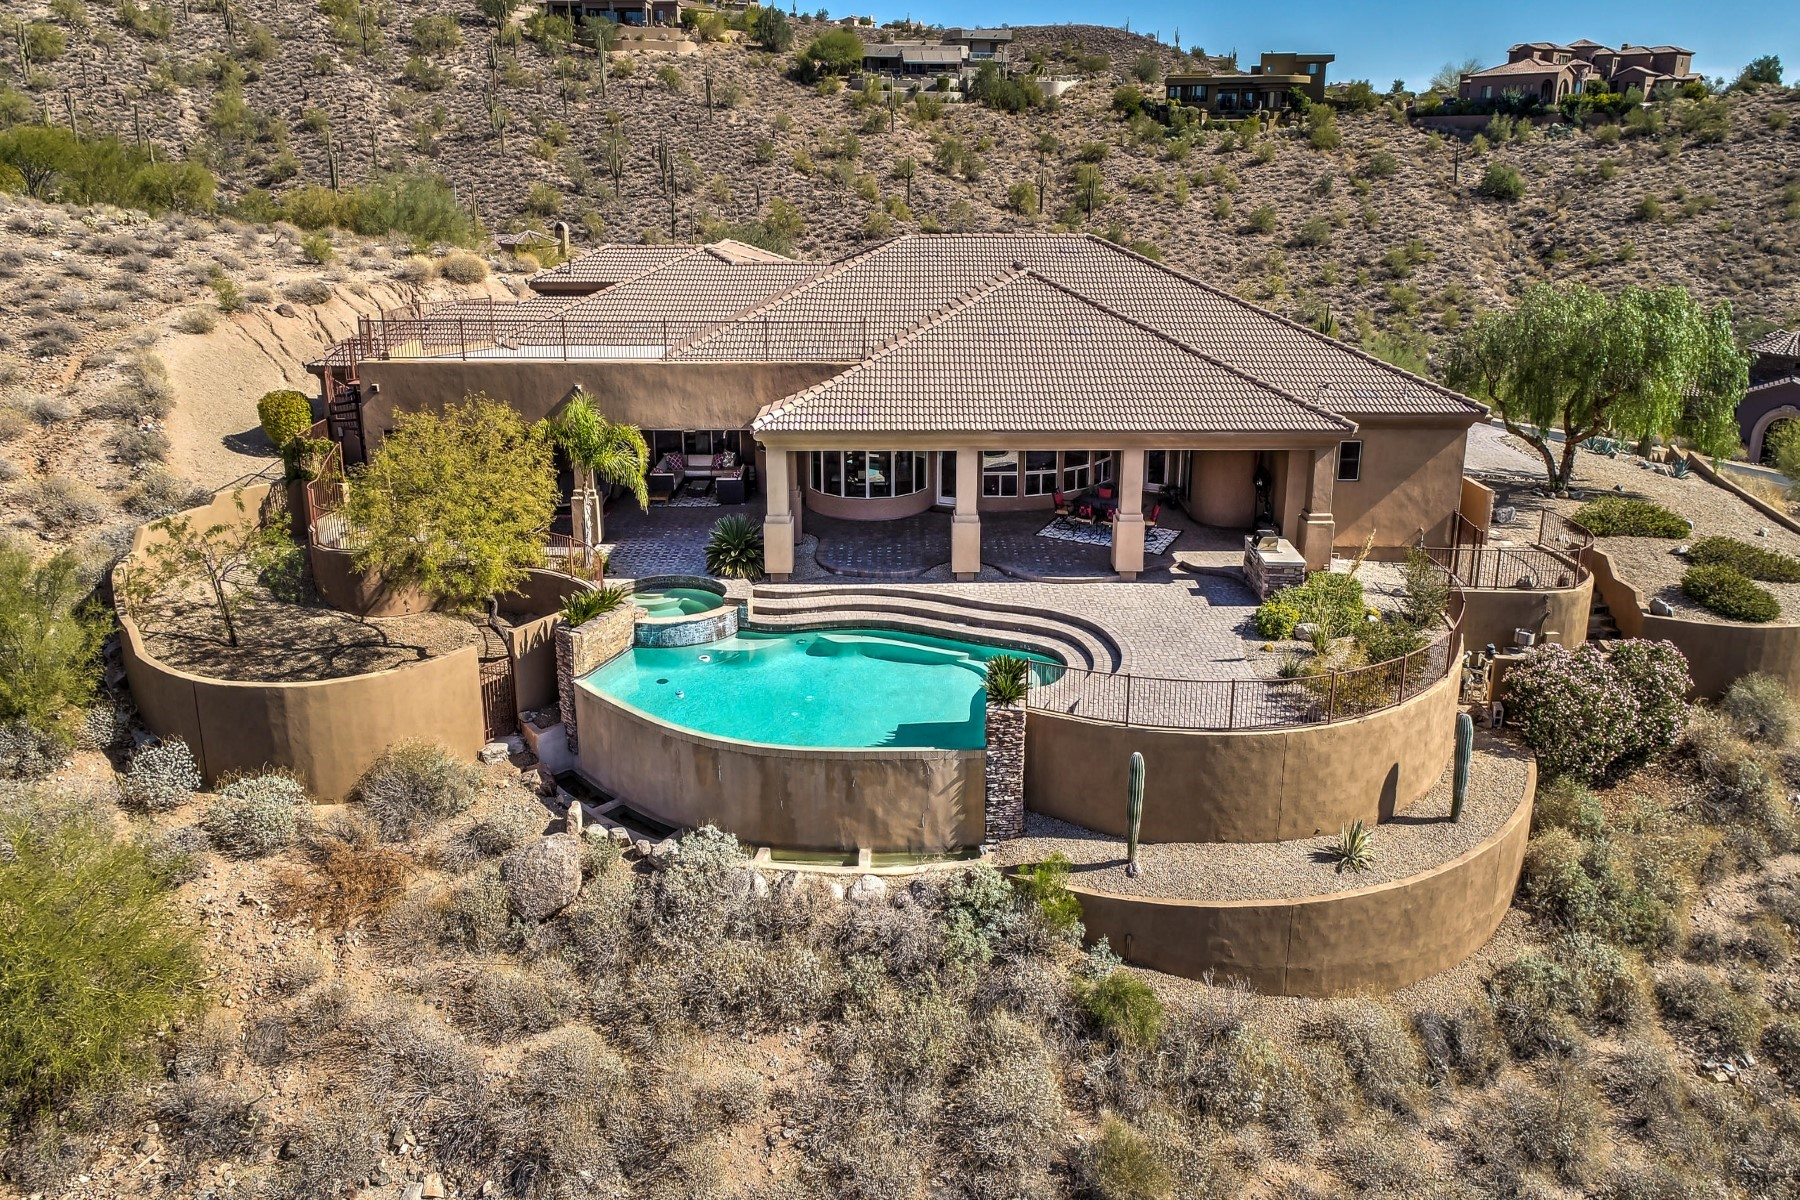 Single Family Home for Sale at Crestview at Fountain Hills 10624 N Arista Ln Fountain Hills, Arizona 85268 United States